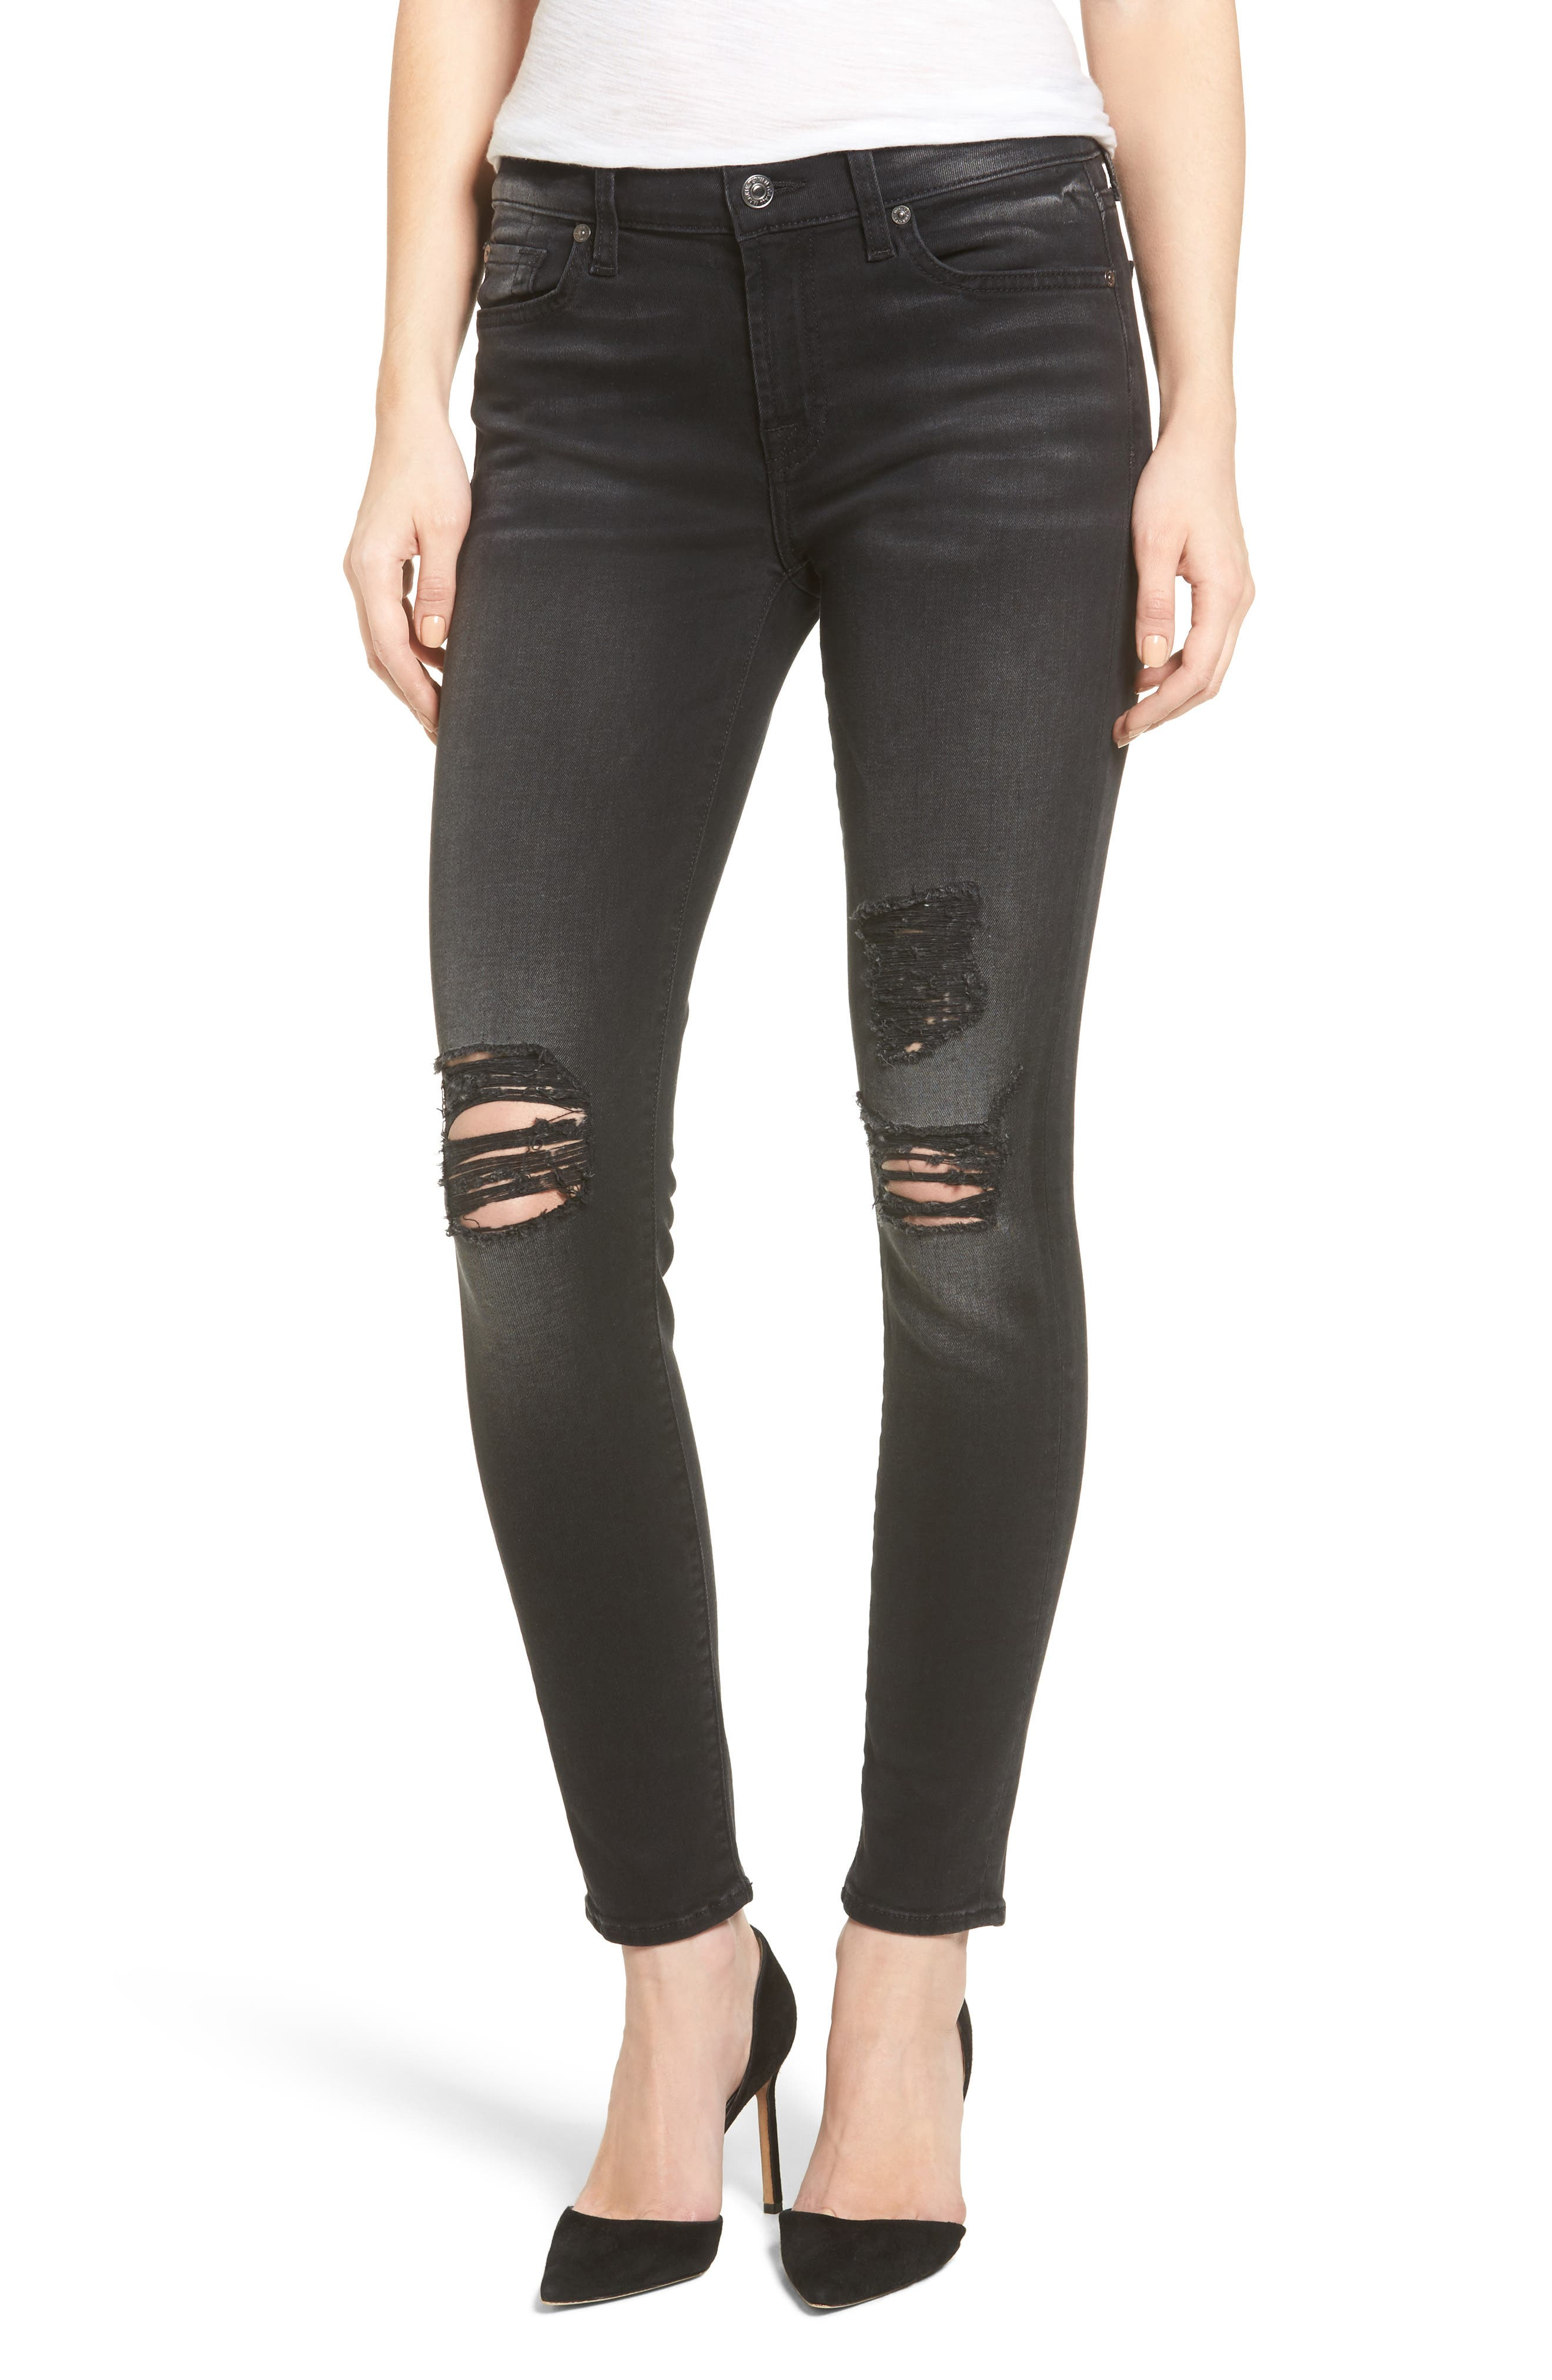 Seven7 The Ankle Skinny Jeans,                         Main,                         color, Aged Onyx